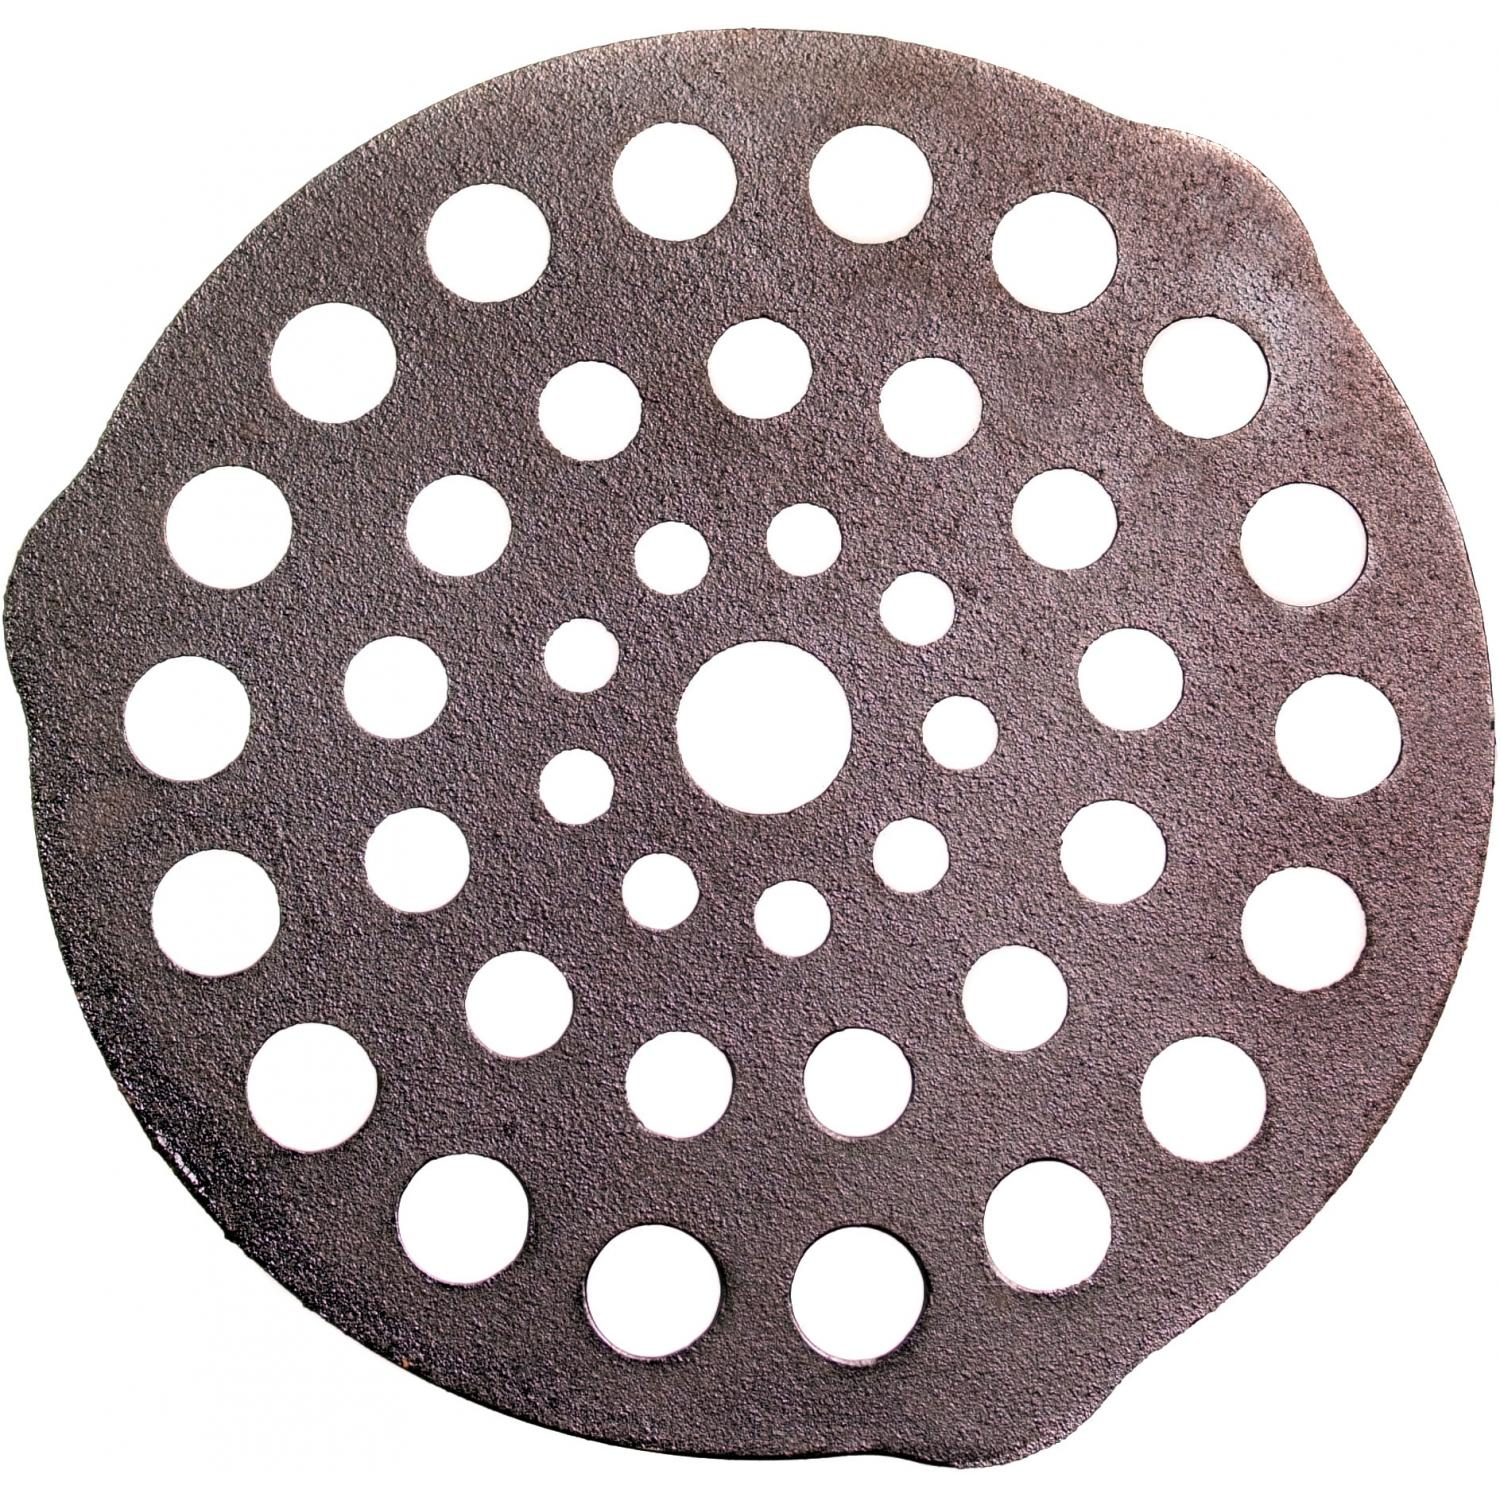 Lodge Trivets Seasoned Cast Iron Trivet - L8DOT3